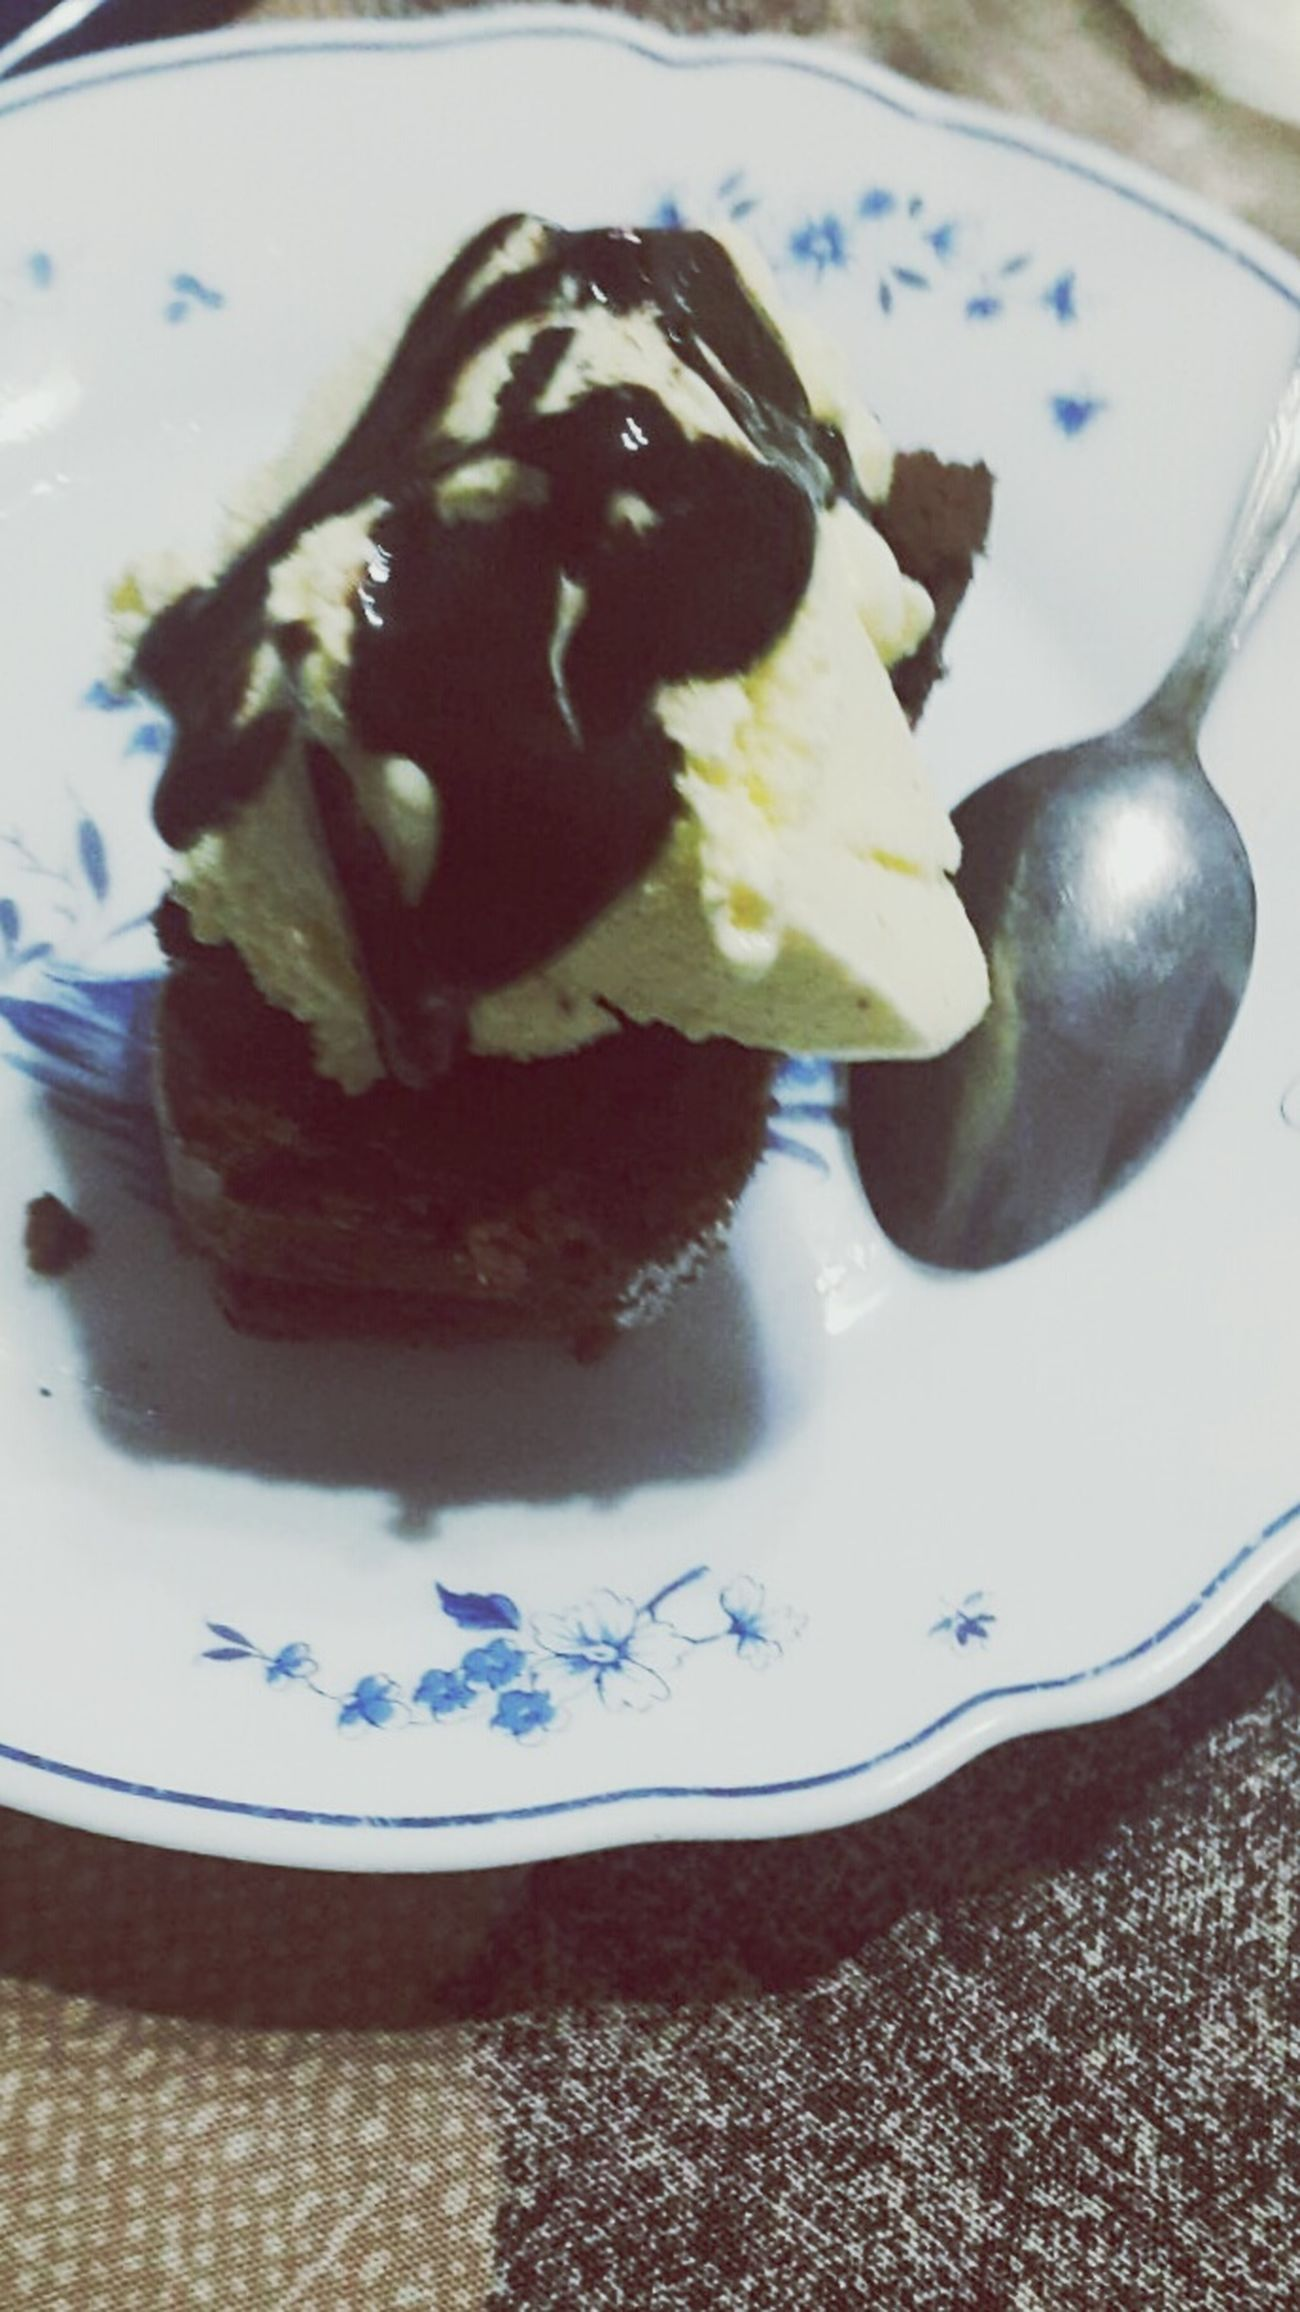 Delicious Delicious Brownie Oreo Gelato Vainilla Chocolate Postre NewYear NewYearsDay Happy New Year 2017 2016byebye Meal Nochevieja Food Plate Dessert Sweet Food Indoors  No People Close-up Day